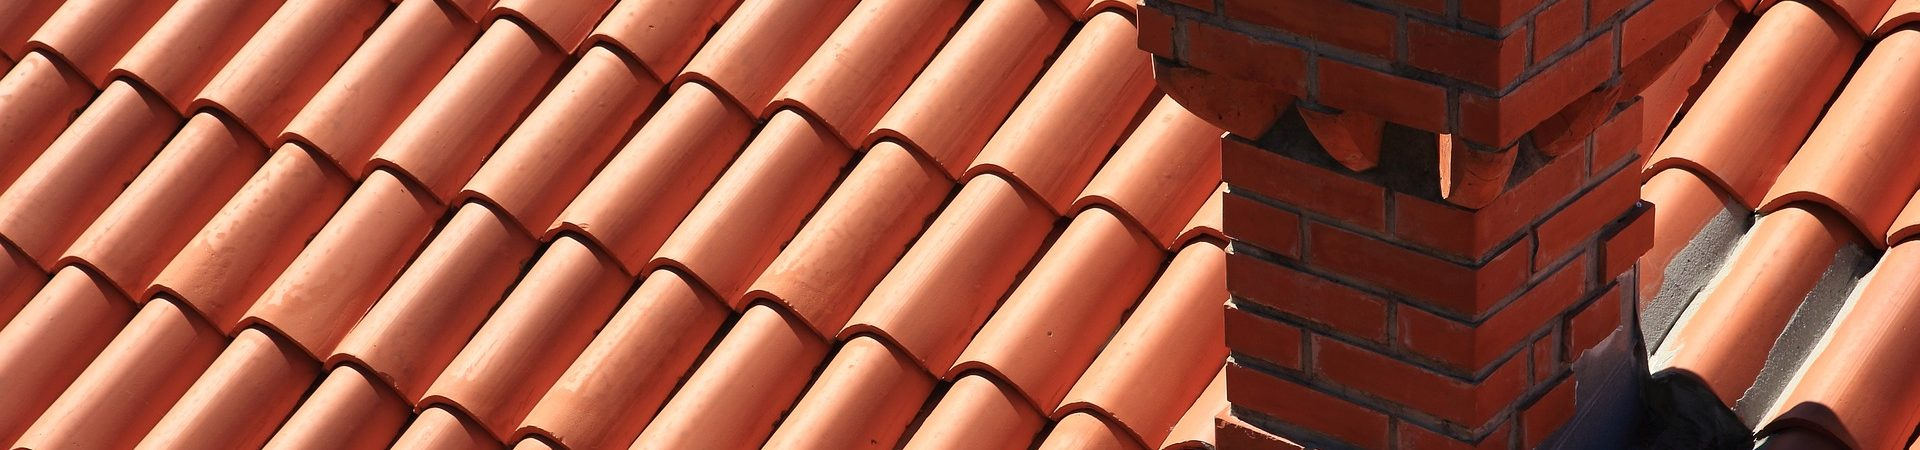 All Protection Roofing and Building